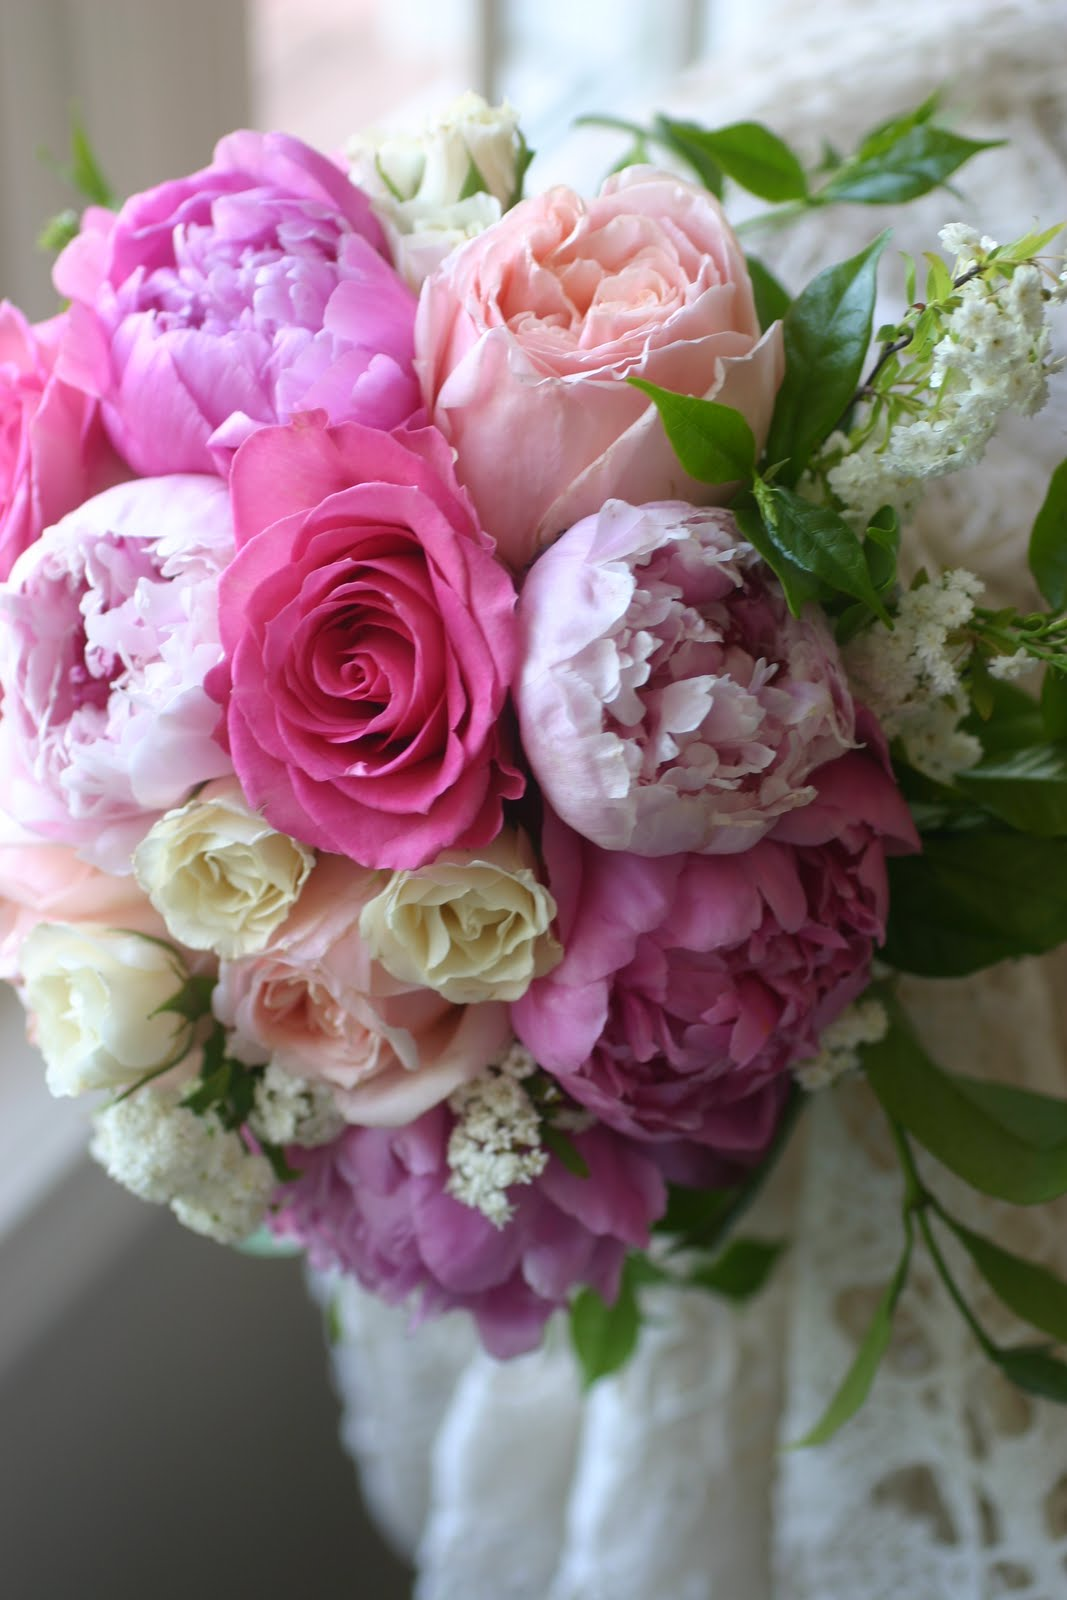 Bridal Bouquets With Cabbage Roses : Pam roberts wedding event floral pensacola orange beach